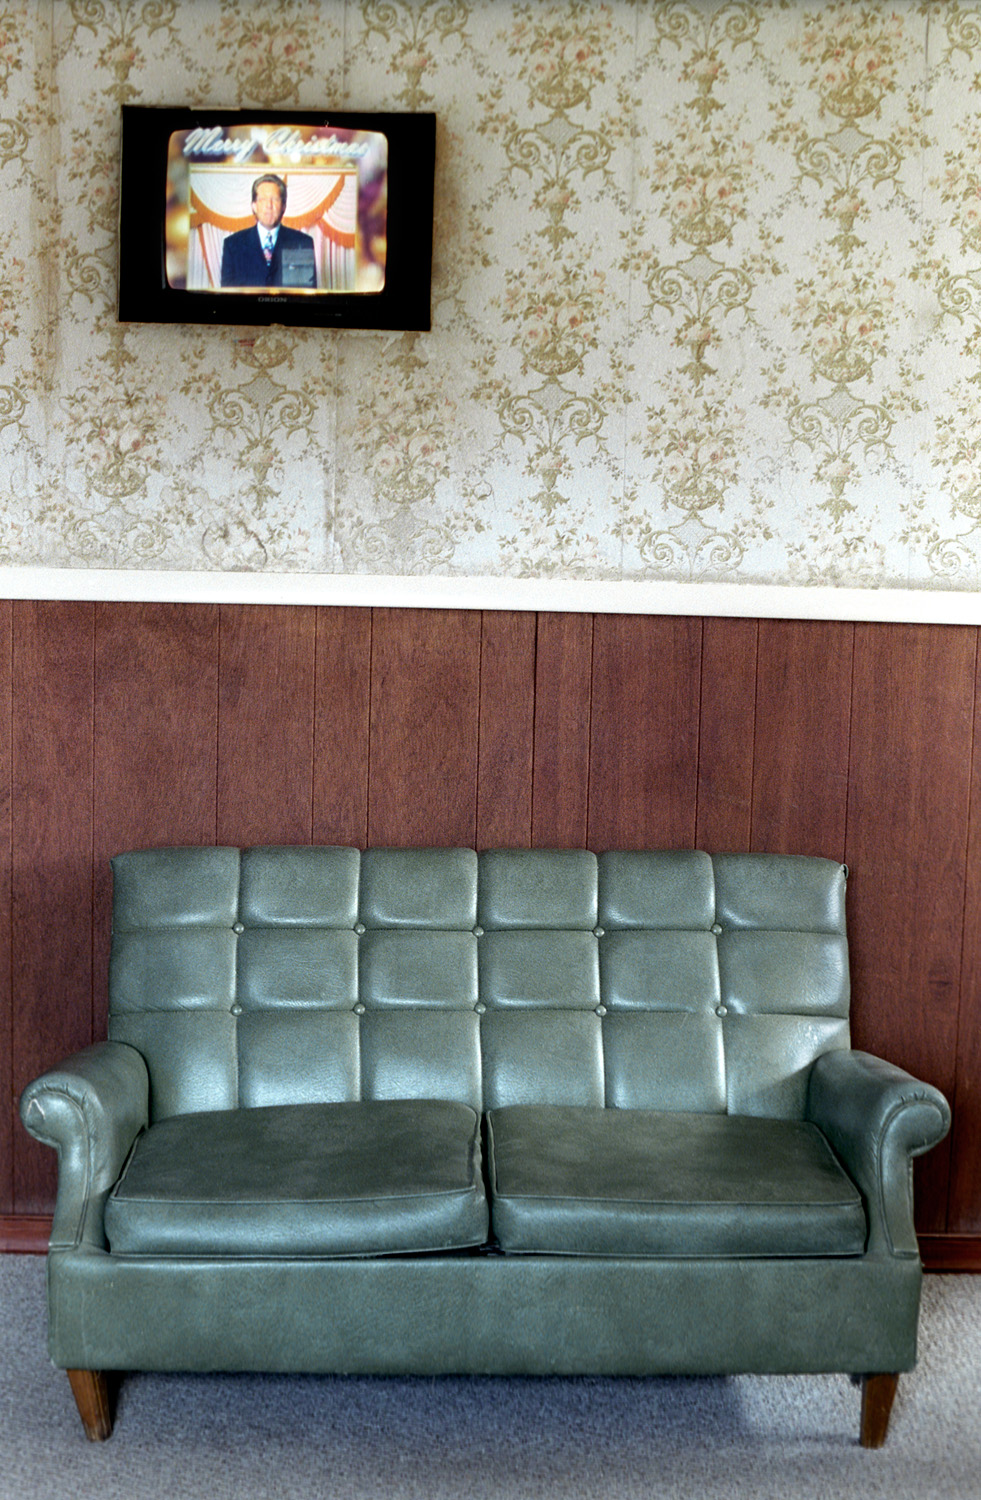 Motel room no 5, Monterey, Virginia